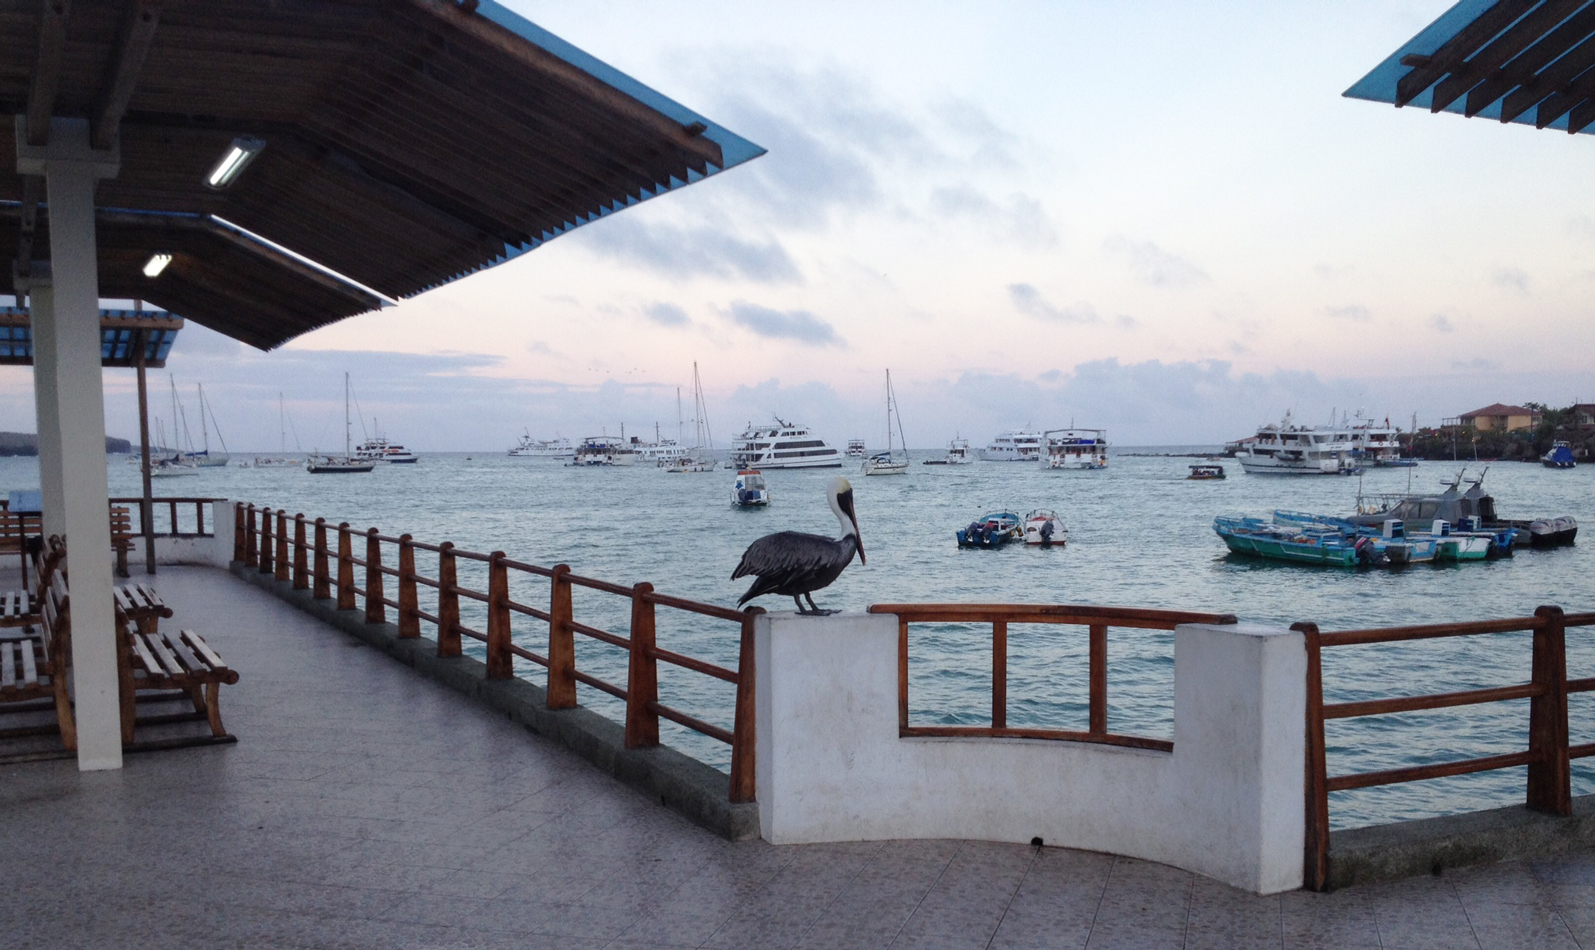 Evening view of the harbor at Puerto Ayora